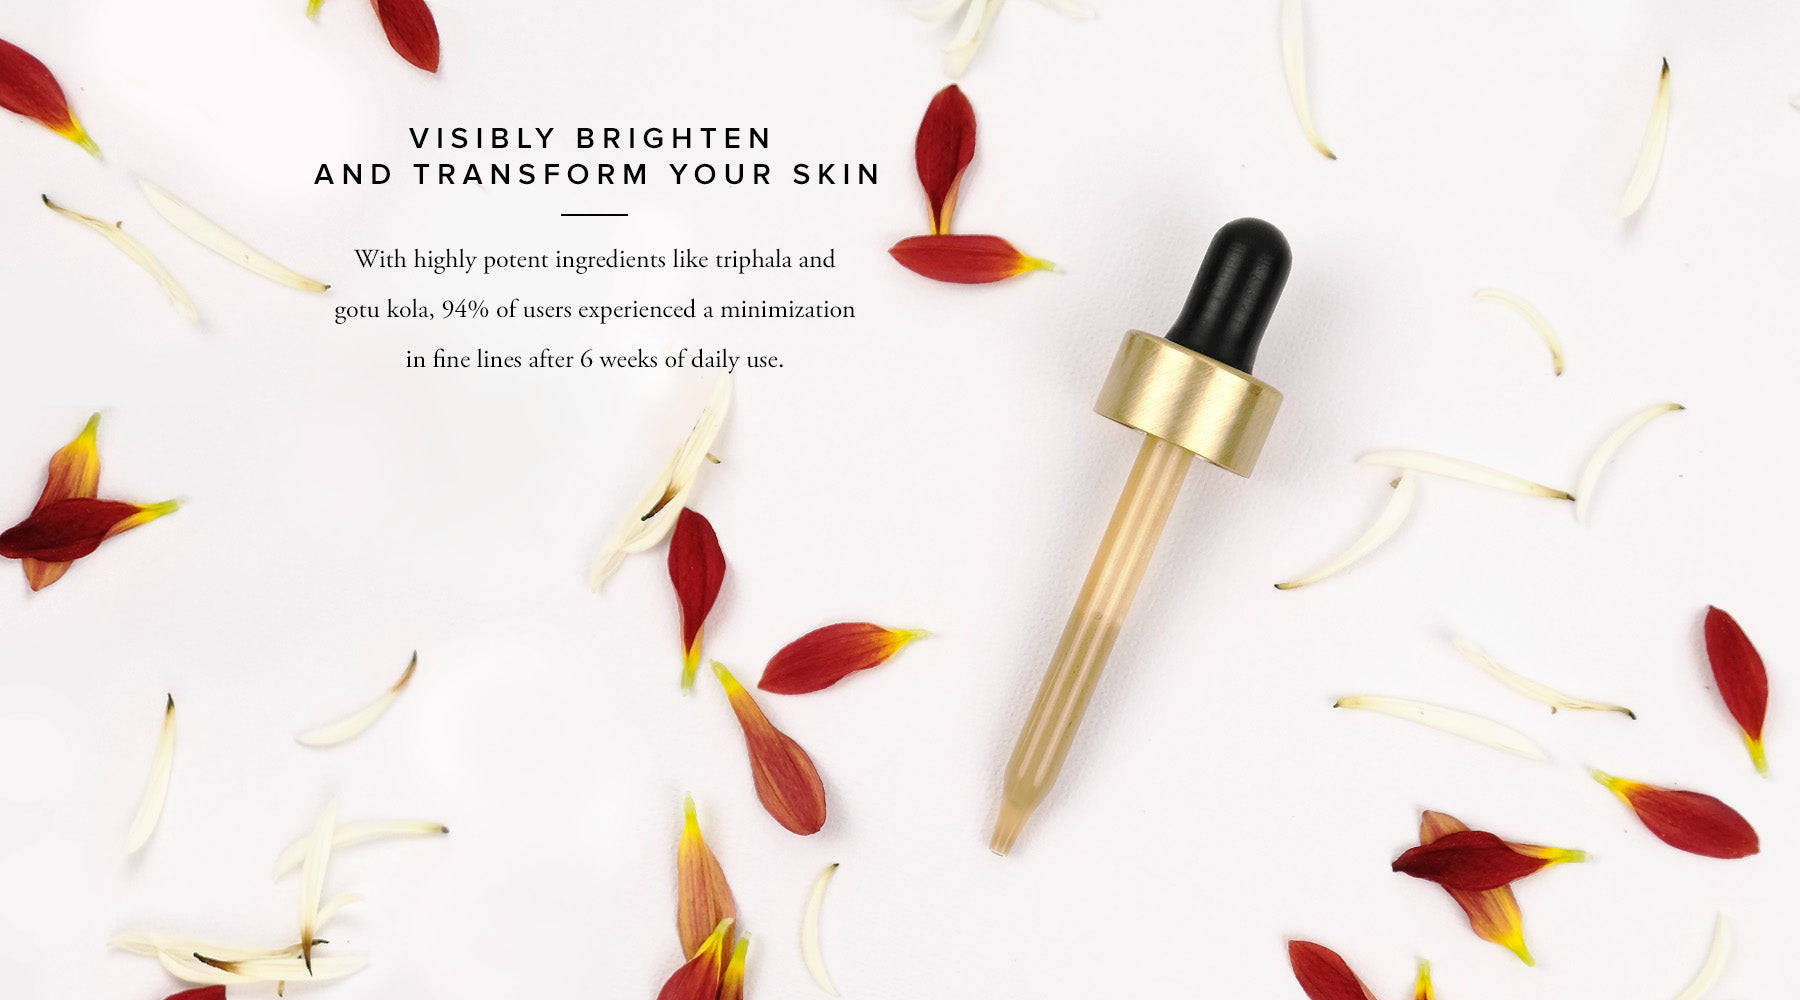 Visibly brighten and transform your skin  With highly potent ingredients like triphala and gotu kola, 94% of users experienced a minimization in fine lines after 6 weeks of daily use